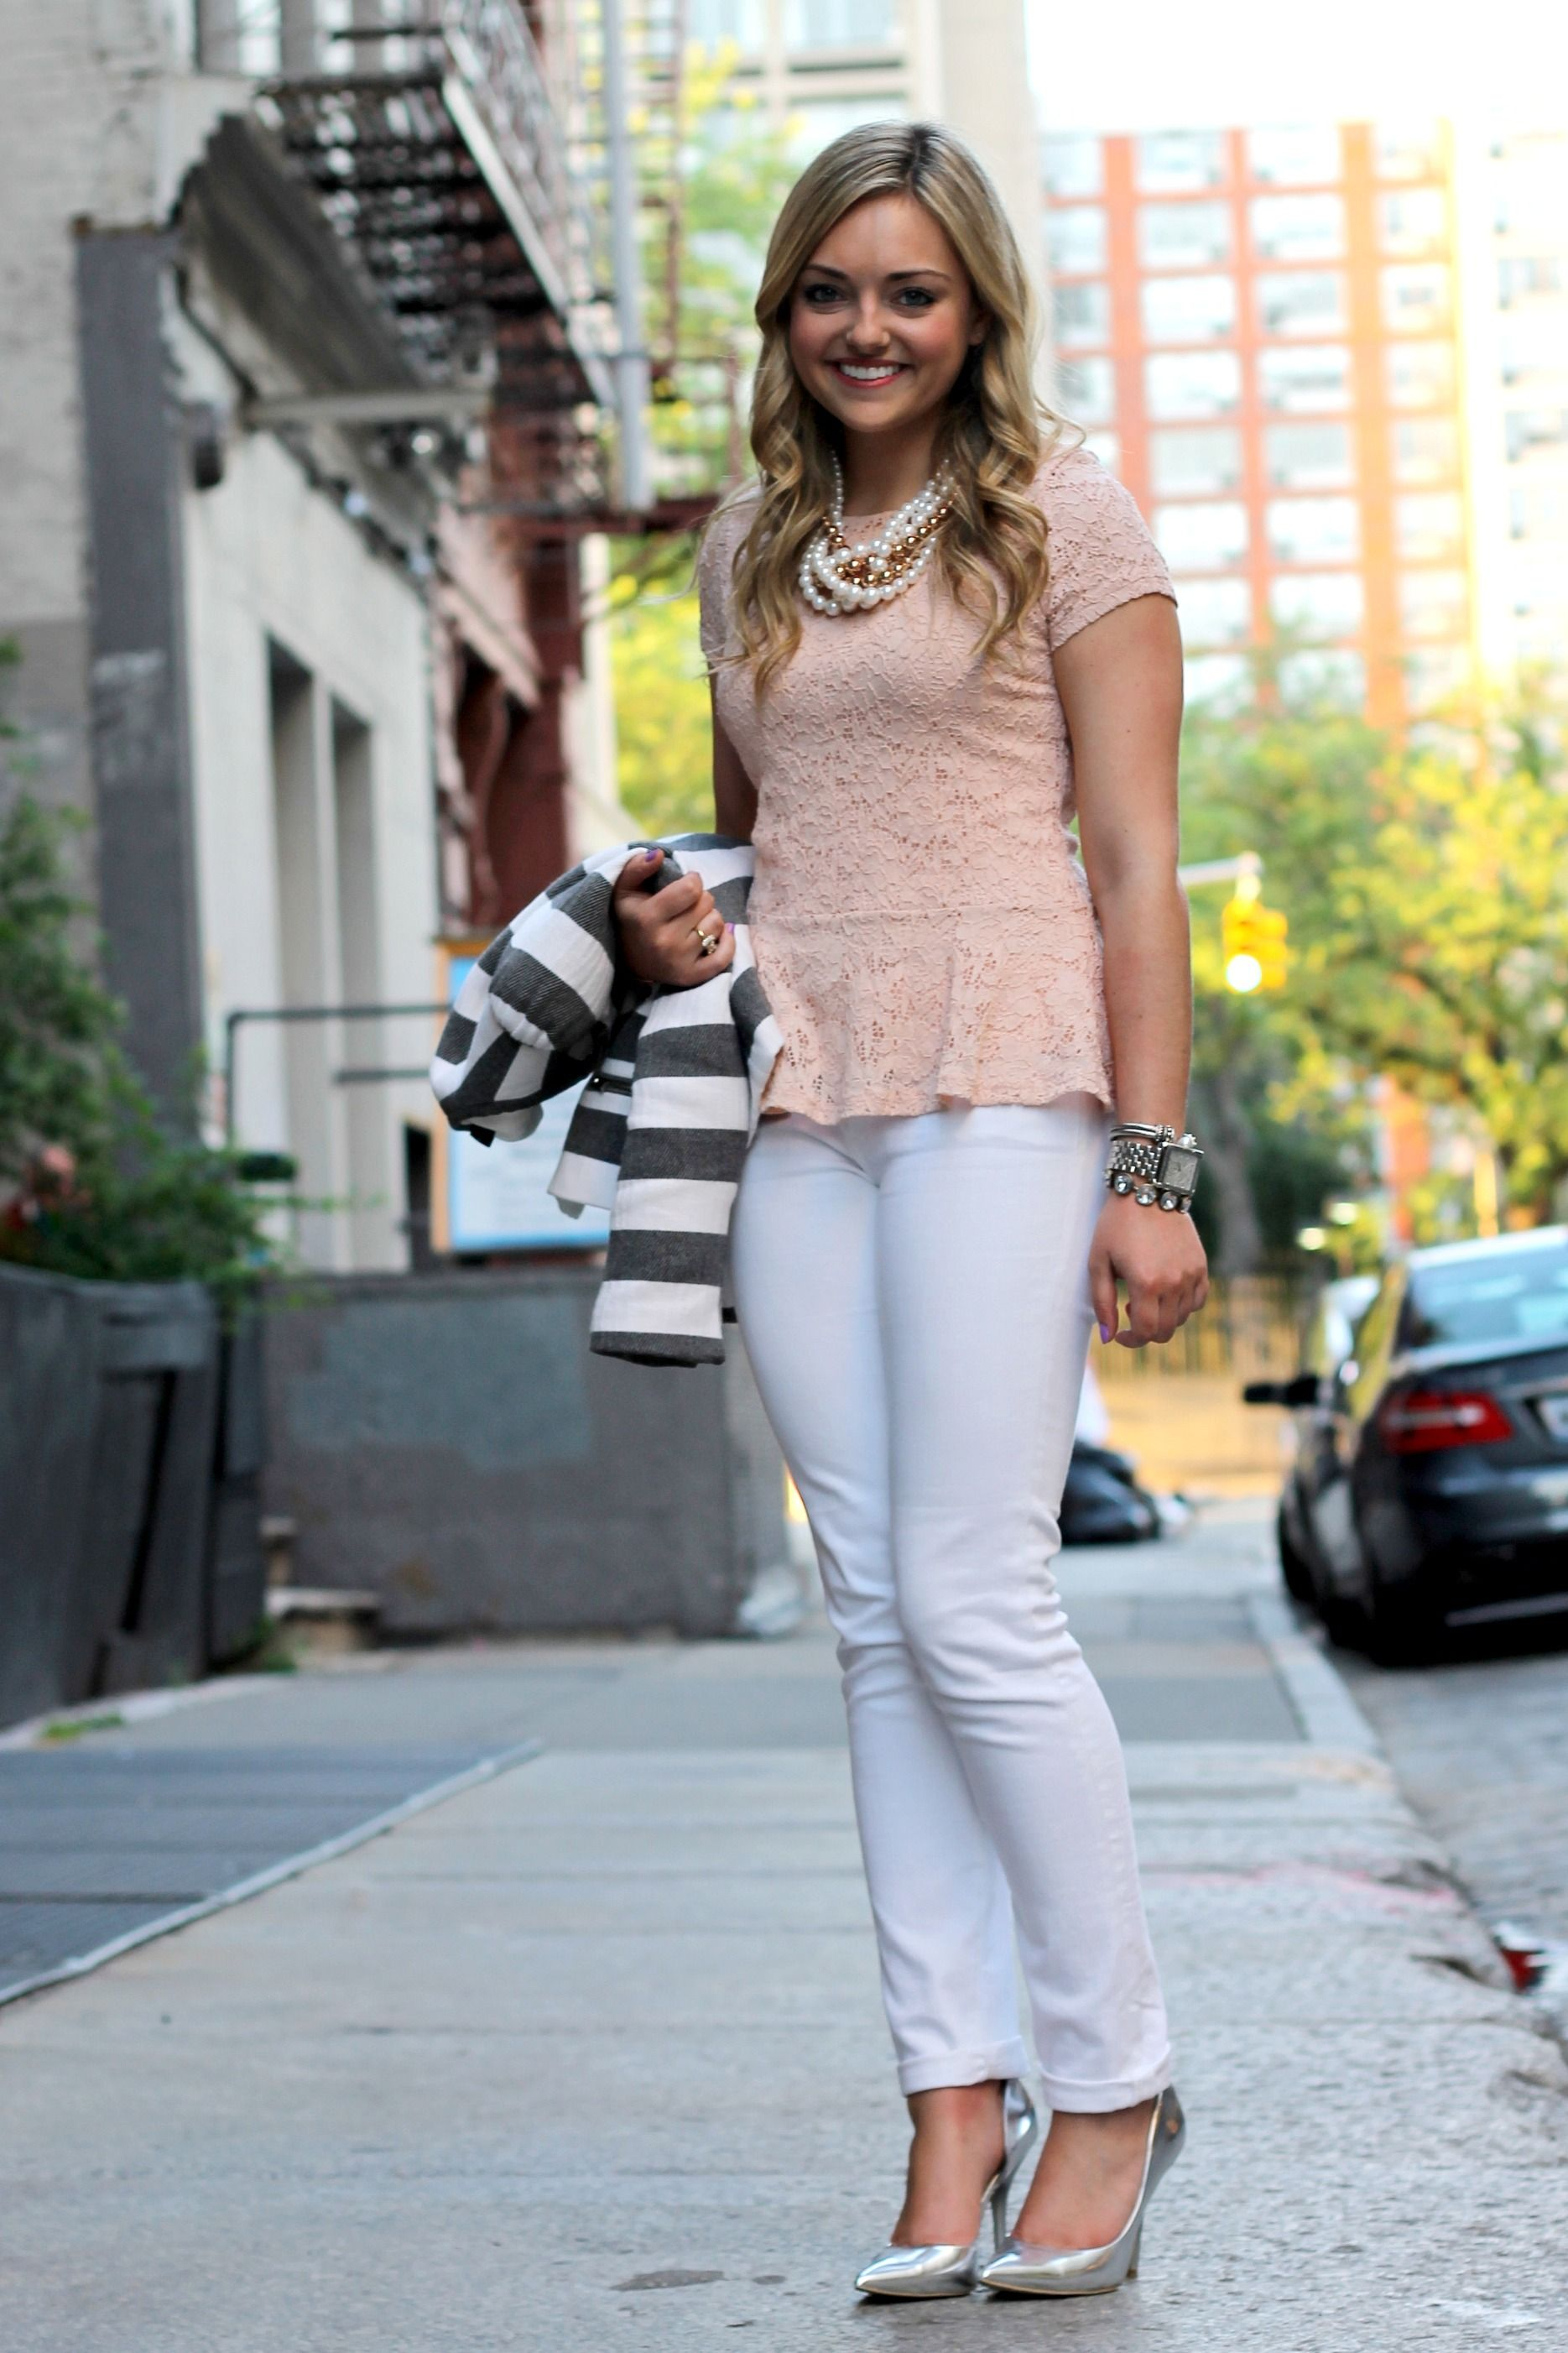 78  images about White jeans & heels on Pinterest   White jeans ...